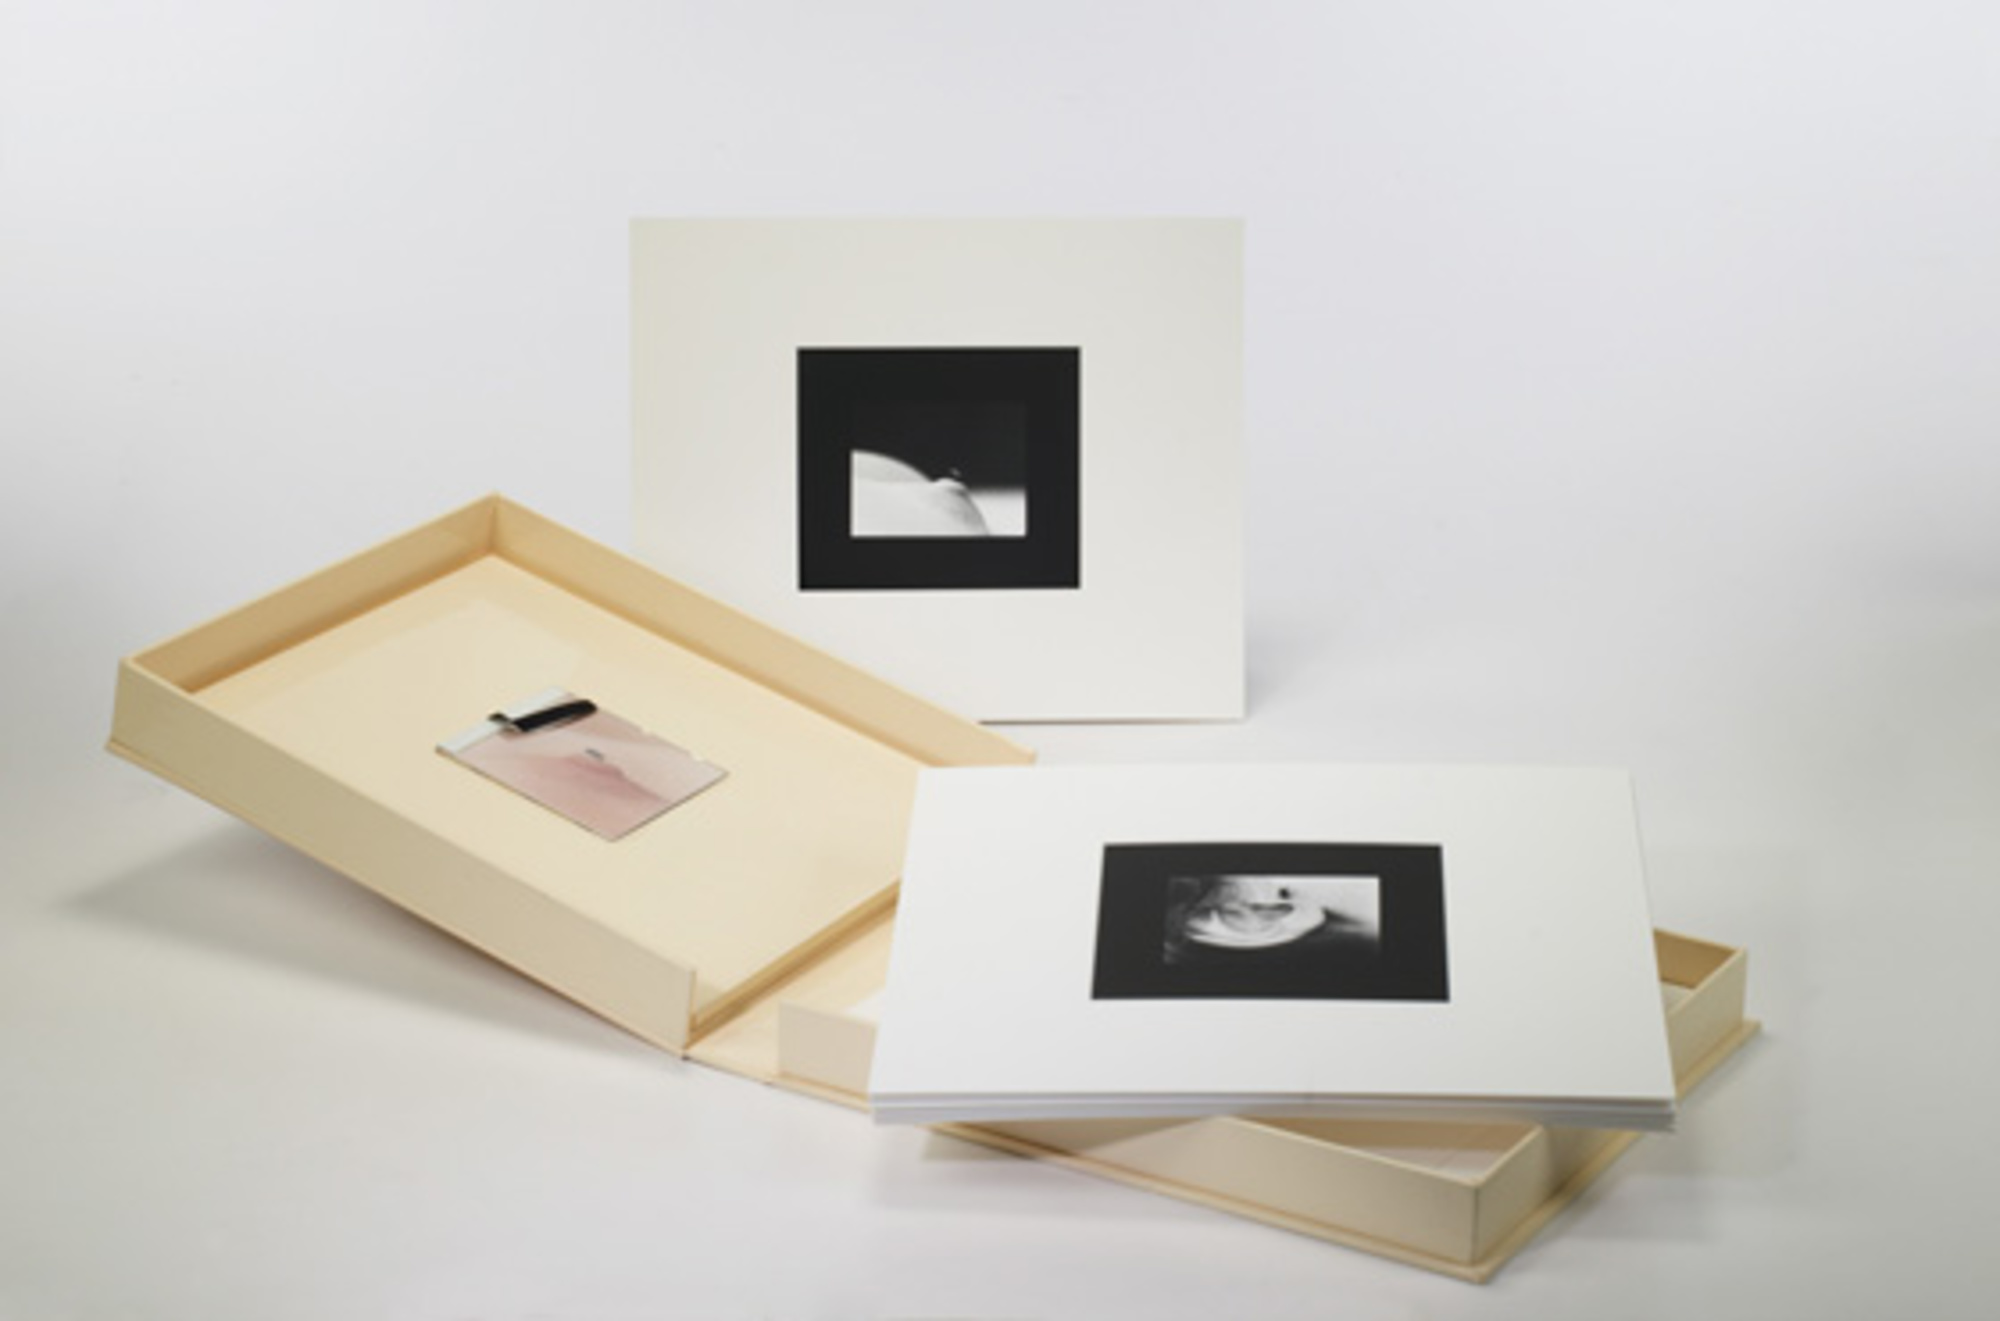 519 Yoko Ono Fly Portfolio Important Design Day 2 20 May 2008 Auctions Wright Auctions Of Art And Design